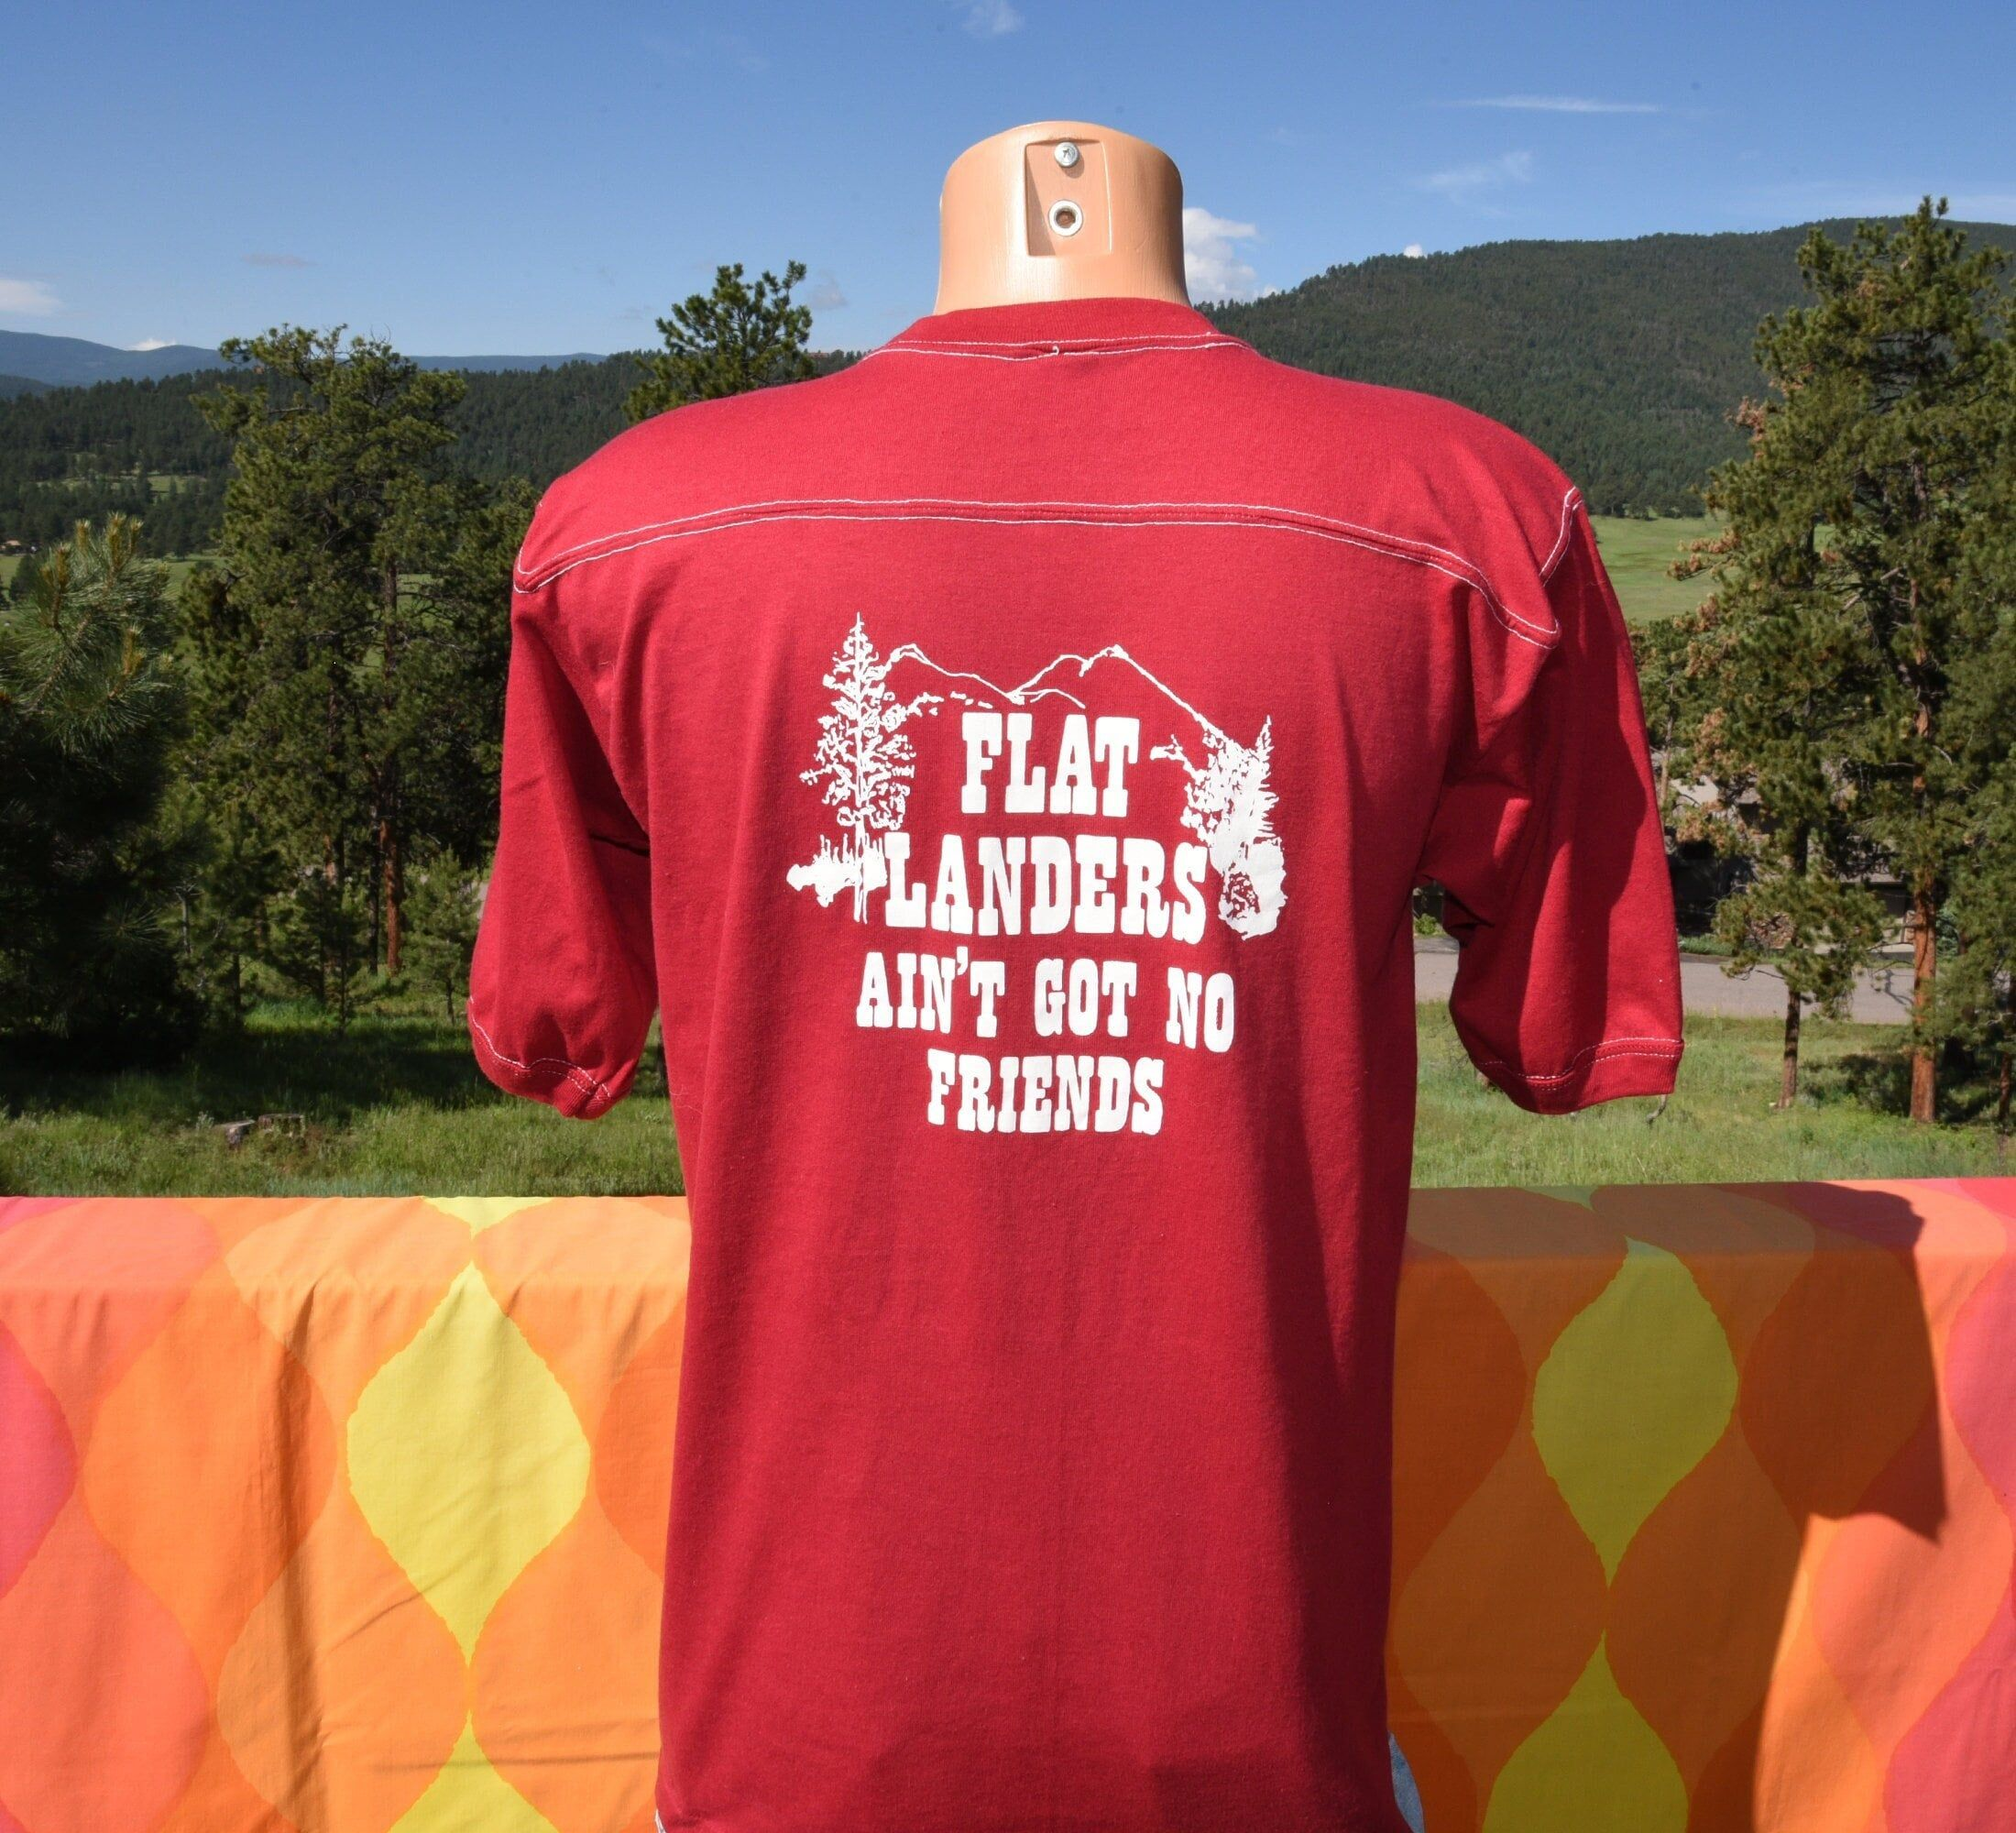 Tag: Sportswear remnant Era: 80s Fabric: 50-50 Size reads: Most likely was tagged Large - fits on the modern Medium side, please check measurements Measures: 20 inches across the chest, 29 inches back collar to hem Colors: burgundy half sleeve yoke jersey style t-shirt with white Dinkey Creek on front, Flat Landers Ain't Got No Friends on back Condition: great vintage shape - soft and lovely For reference, Bjorn up there is 5-10. Ships same day to US via USPS with Tracking Number. International